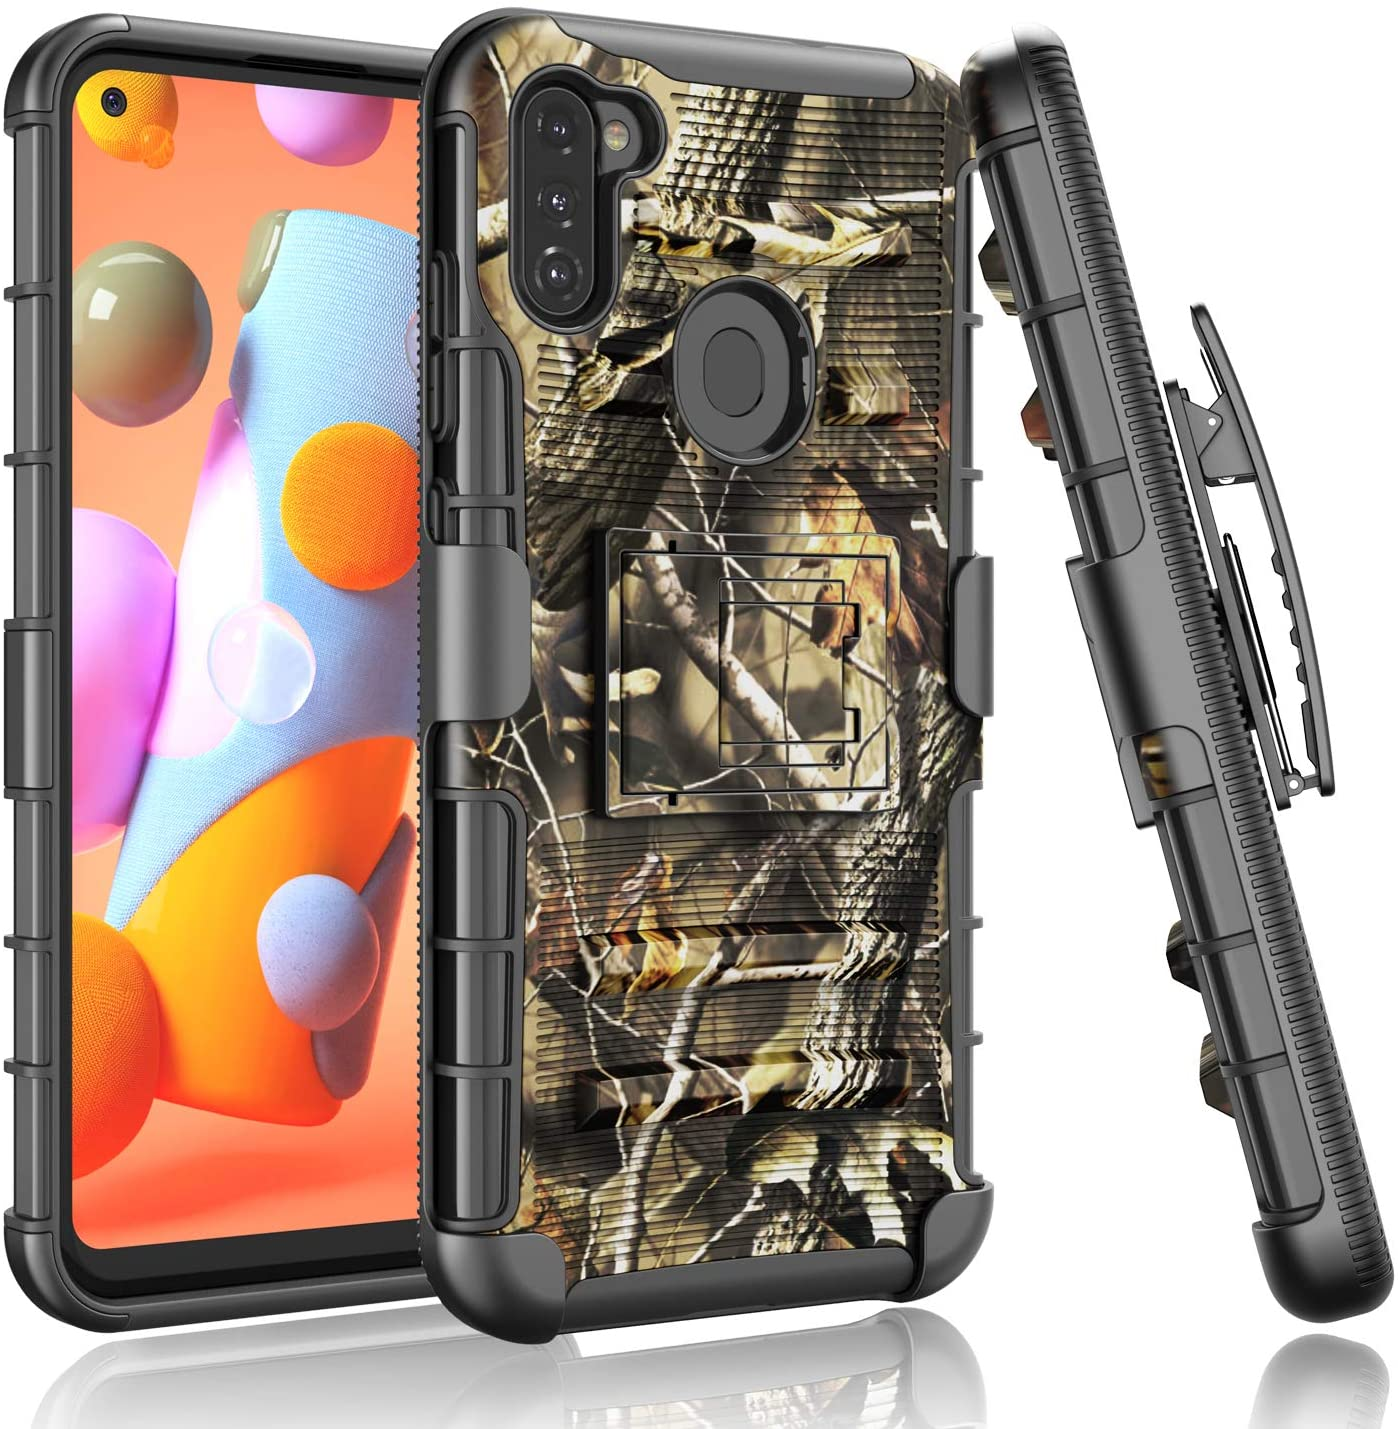 Galaxy A11 Case, Takfox Phone Case for Samsung Galaxy A11 Belt Clip Holster [Kickstand] Heavy Duty Shockproof Rugged Armor Hard Shell Full Protection Cover for Samsung Galaxy A11 2020-Yellow Branch